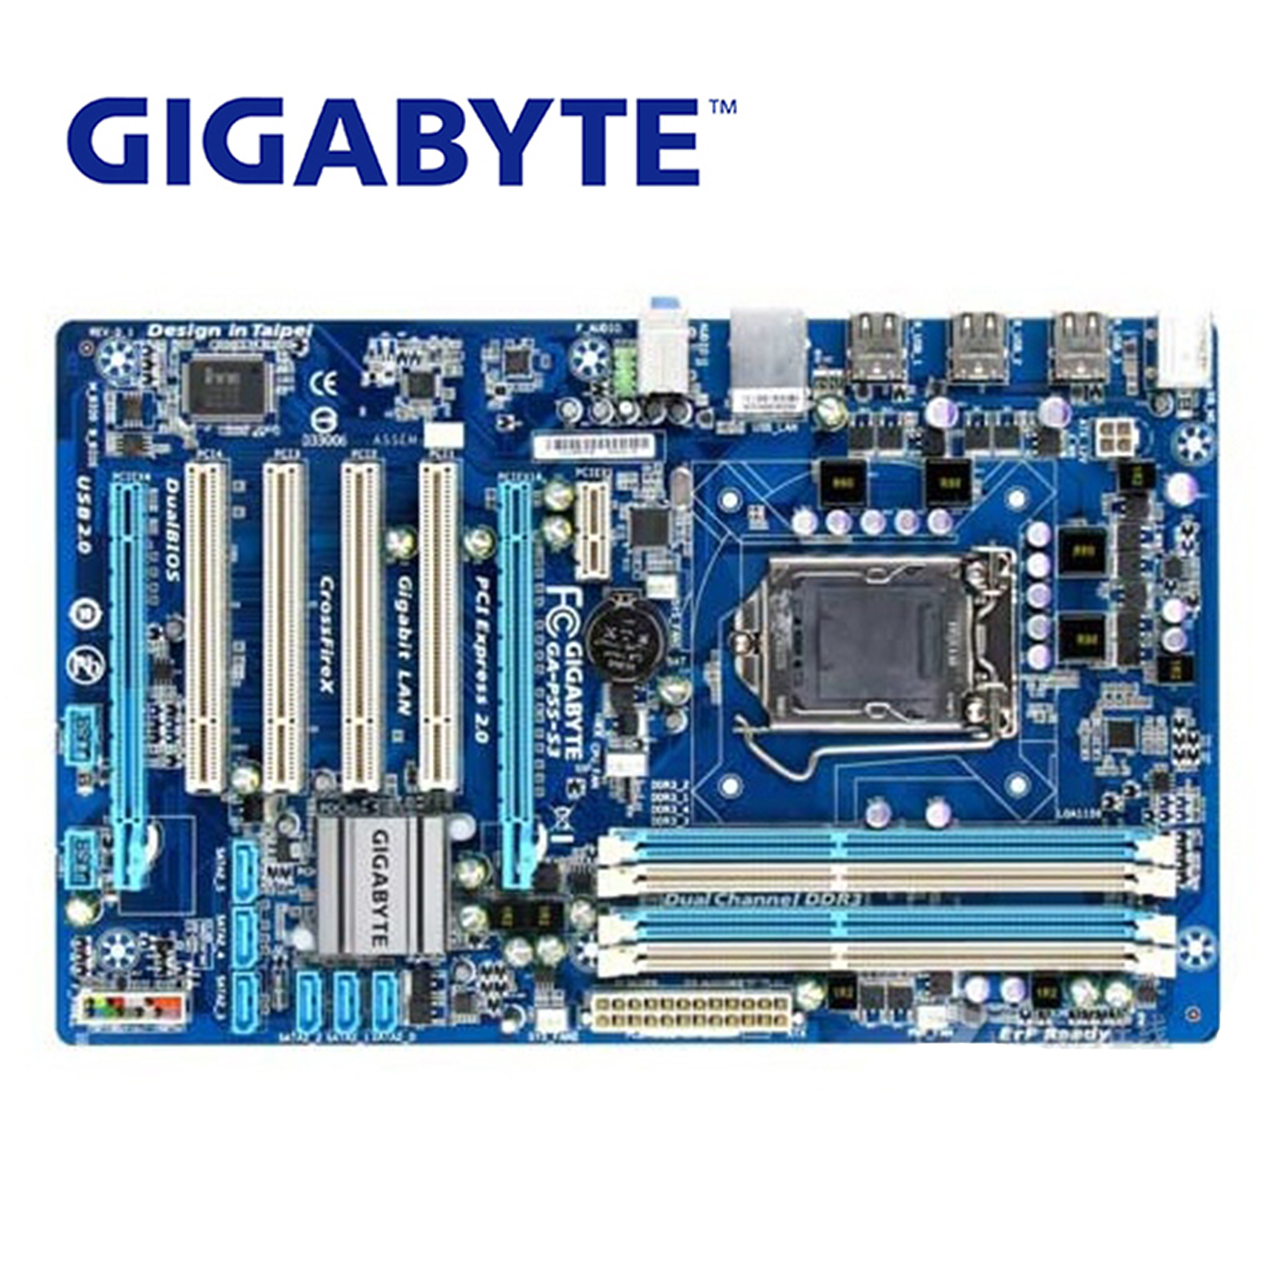 цена на LGA1156 DDR3 Gigabyte GA-P55-S3 100% Original Motherboard 16G H55 P55 S3 P55-S3 Desktop Mainboard Systemboard Used Mother board